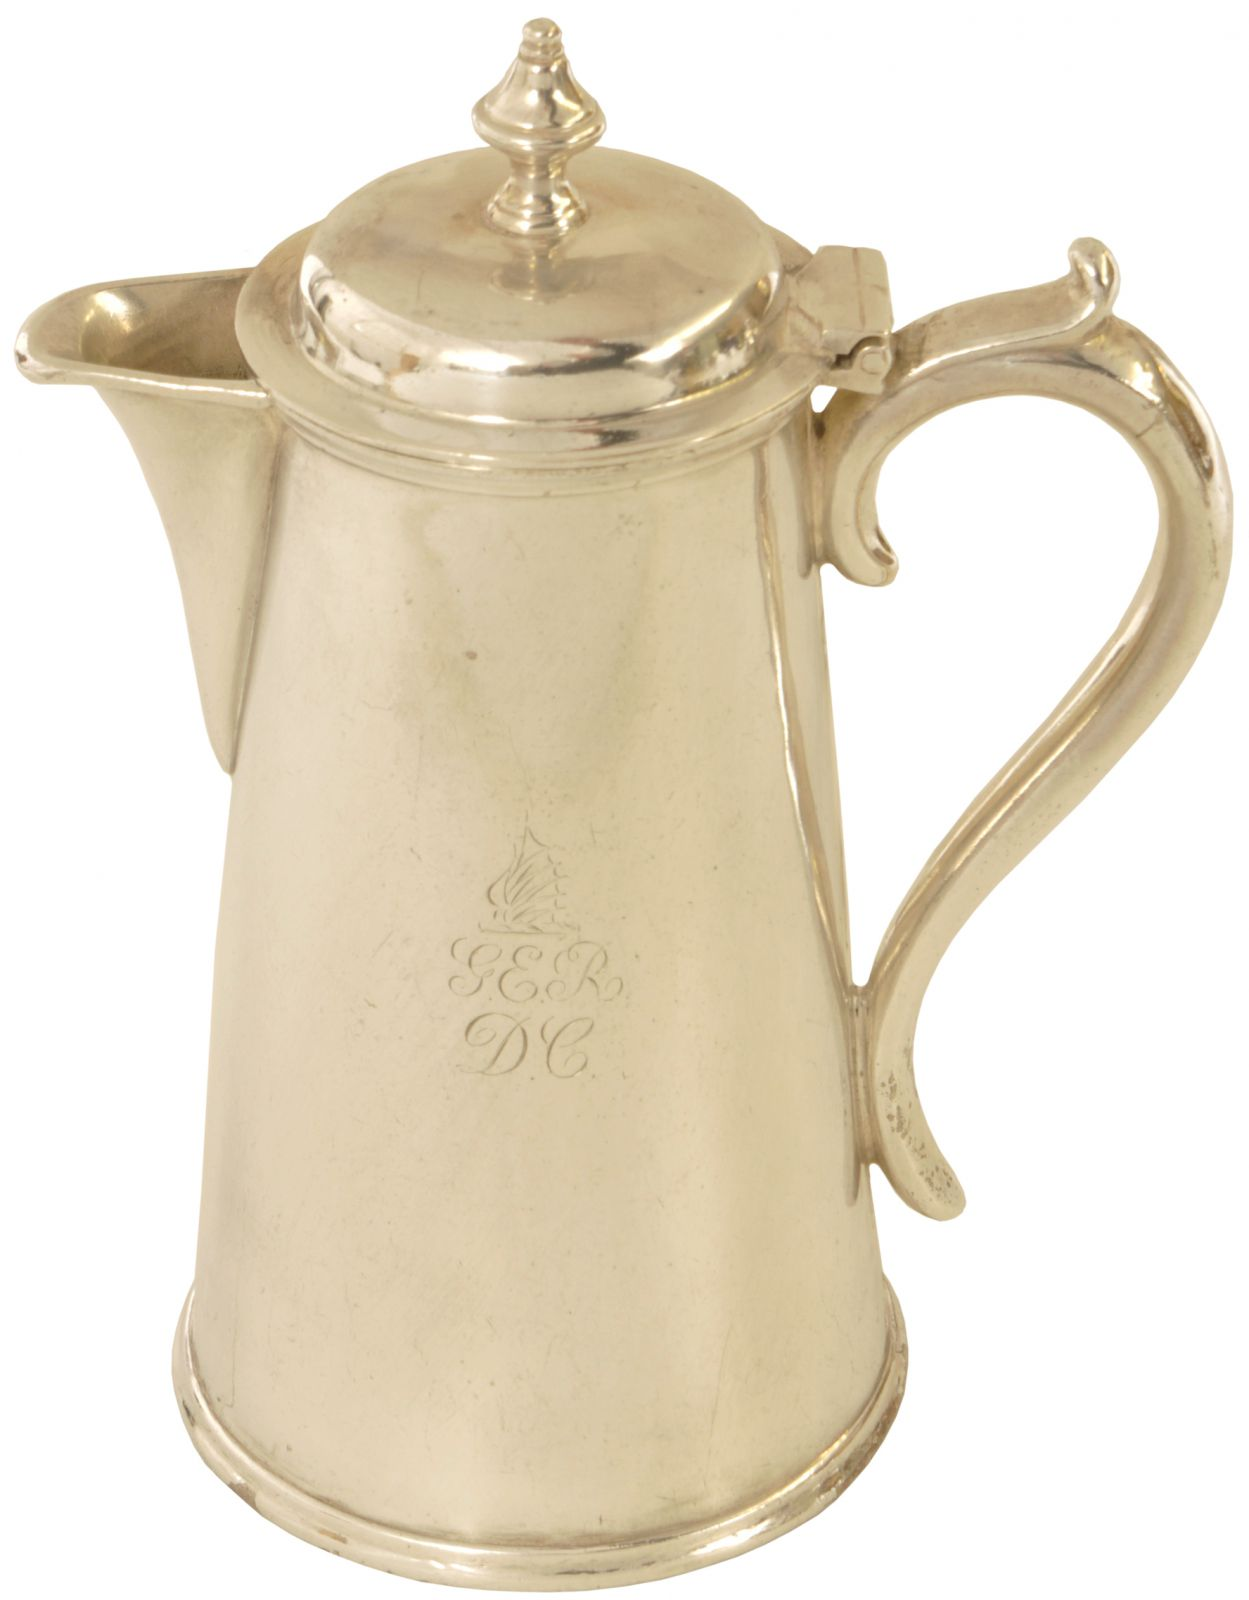 Lot 23 - Silverware, GER Coffee Pot: A Great Eastern Railway Dining Cars silver plated coffee pot by